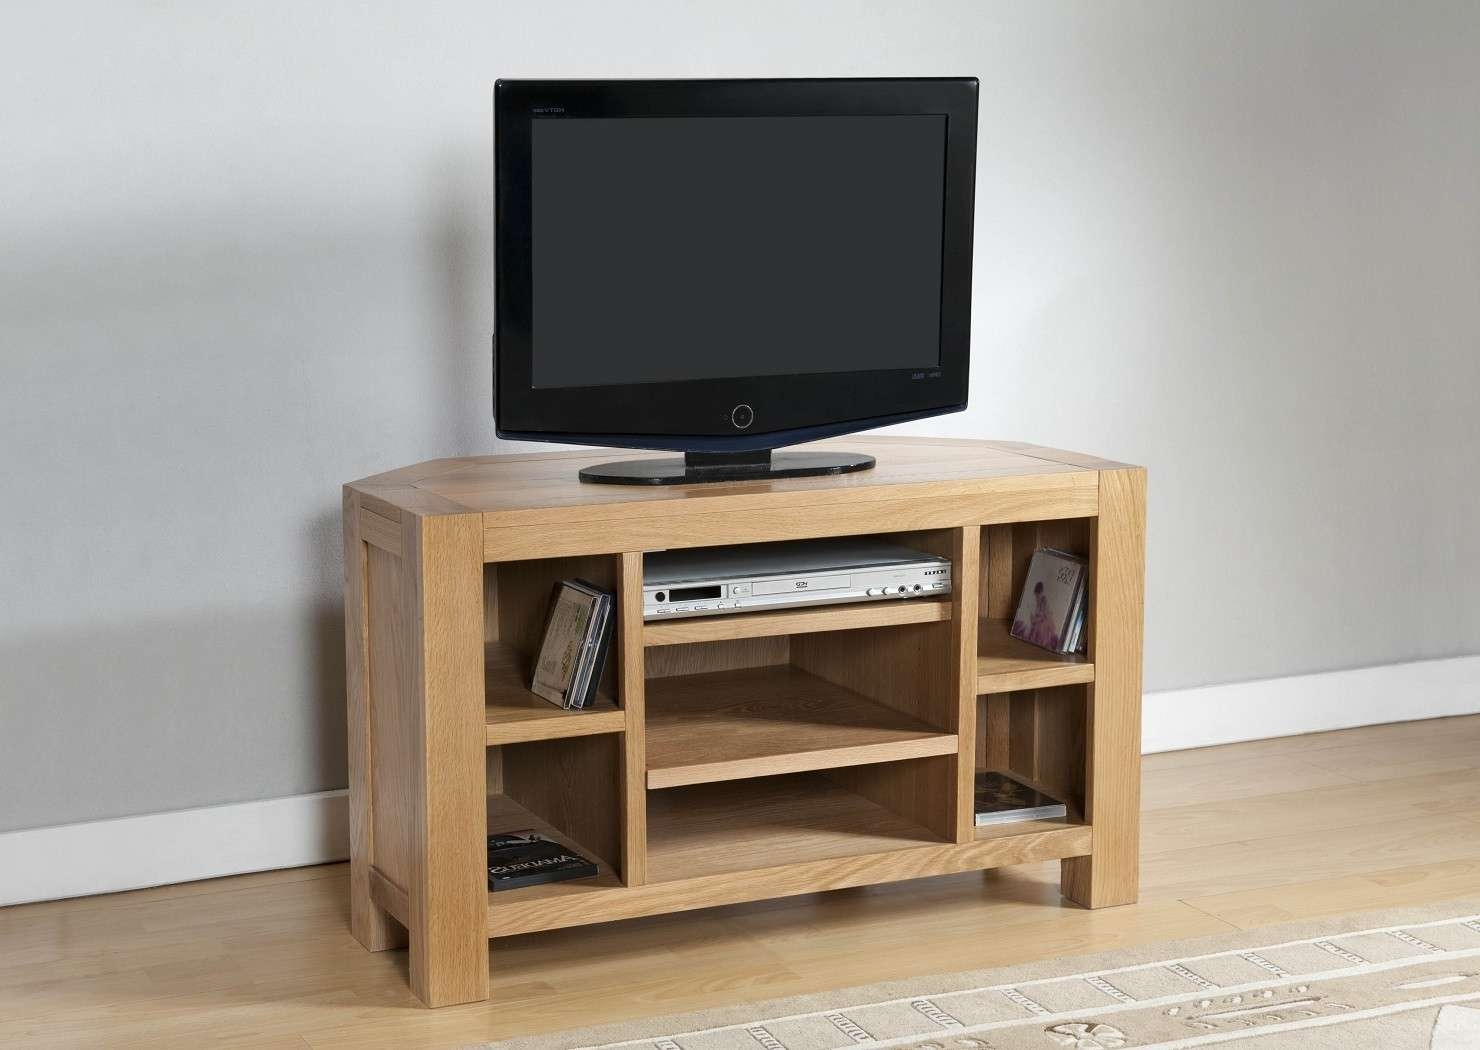 Aylesbury Contemporary Light Oak Corner Tv Unit | Oak Furniture Uk With Regard To Light Oak Corner Tv Stands (View 2 of 20)